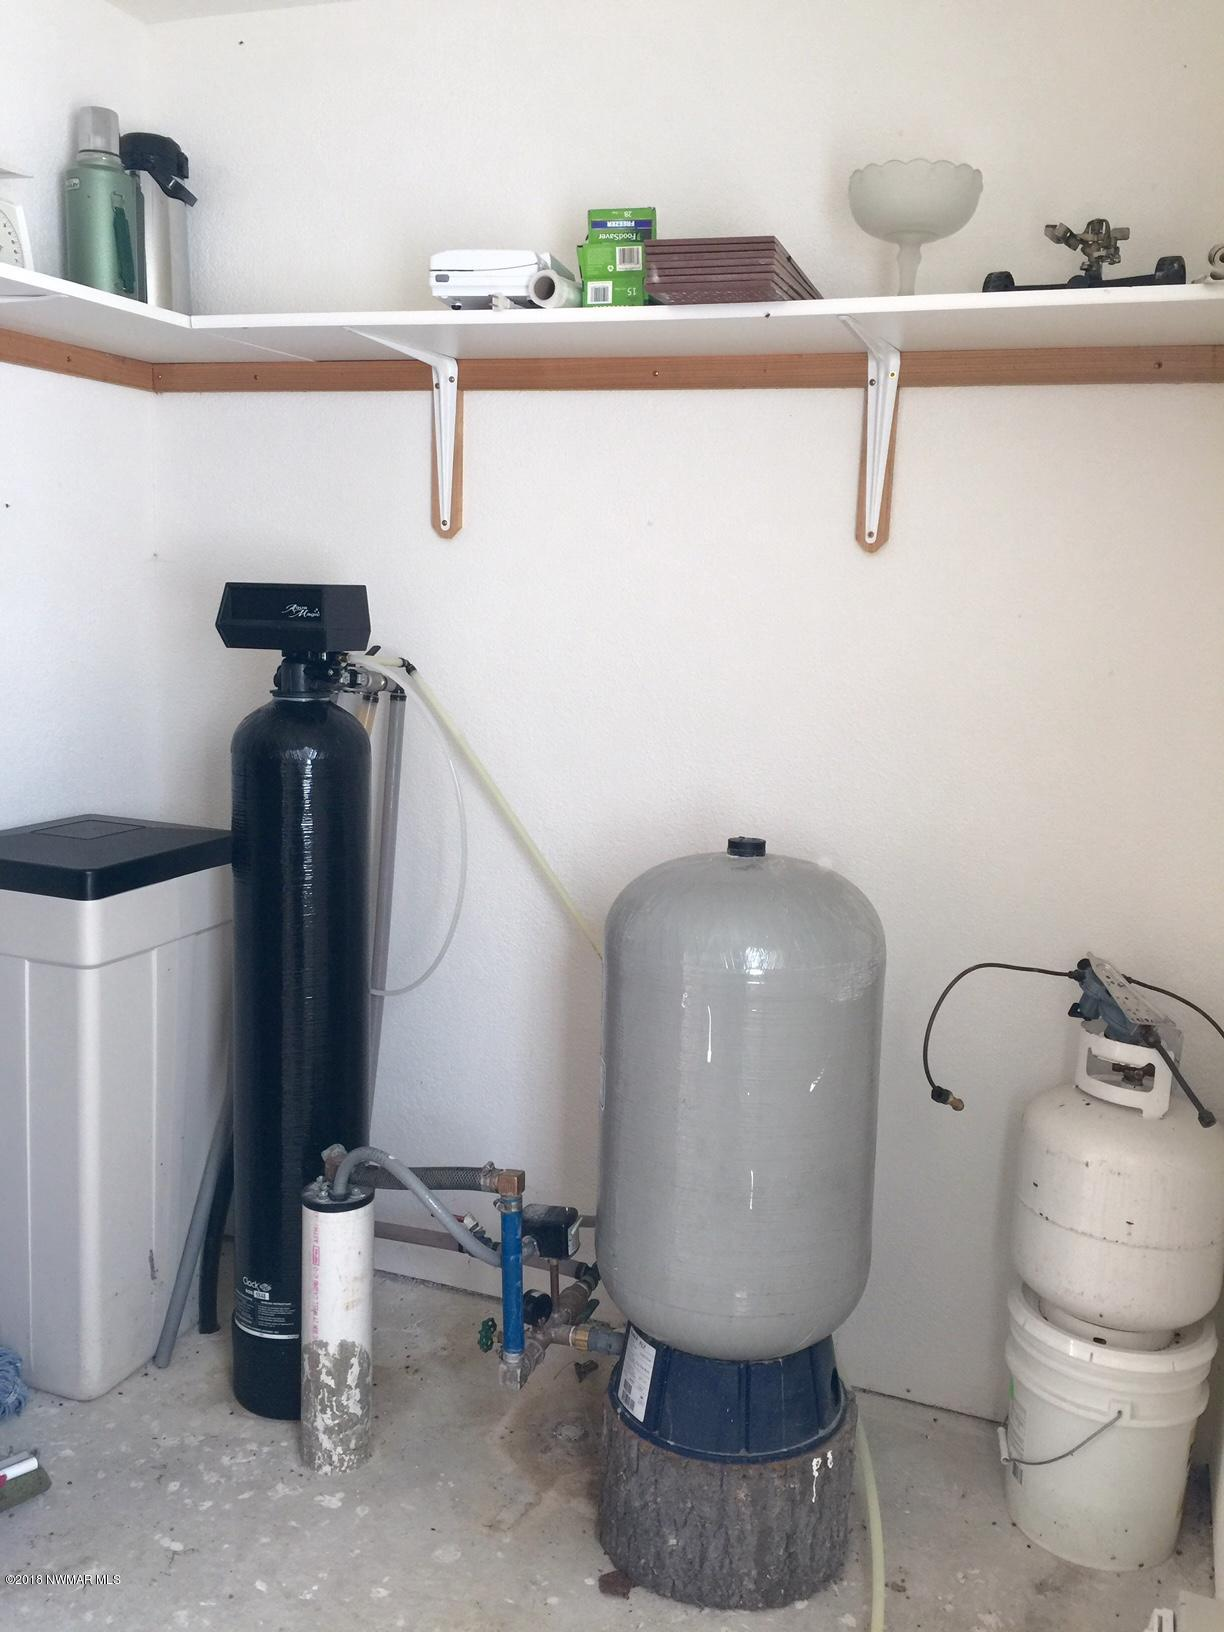 Softener and pressure tank for well